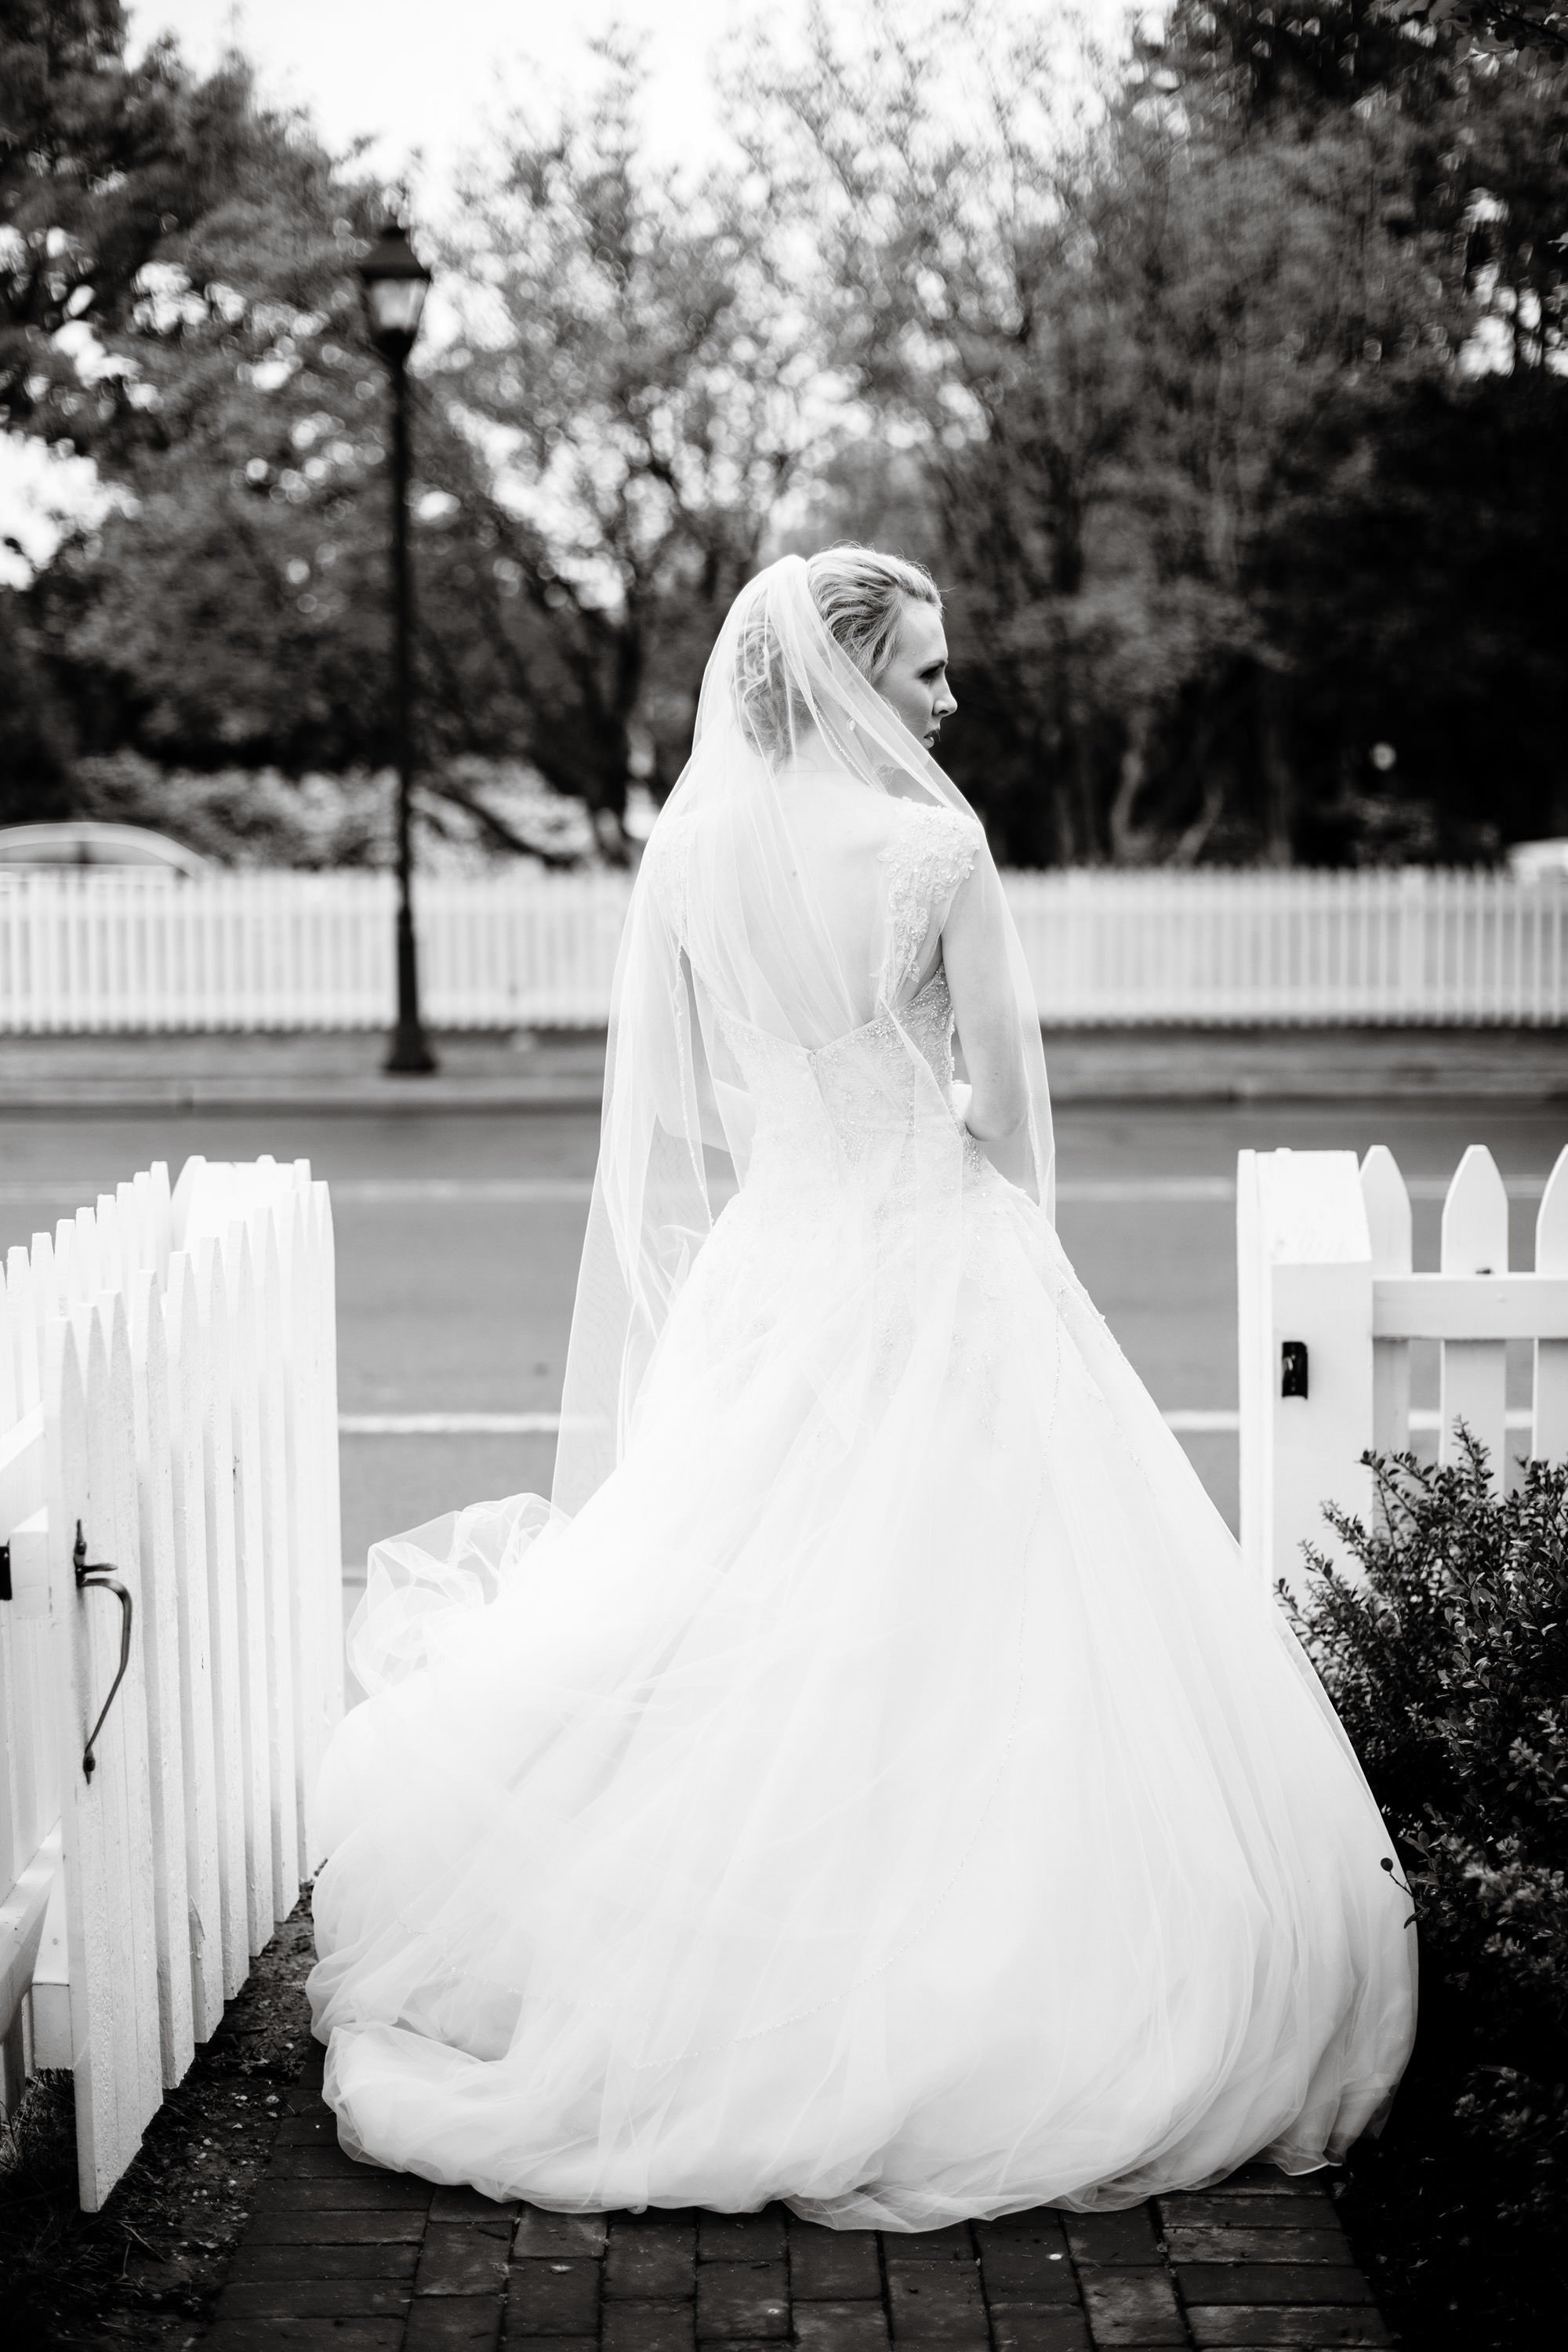 The bride waits for her groom following the ceremony in Easton, MD.